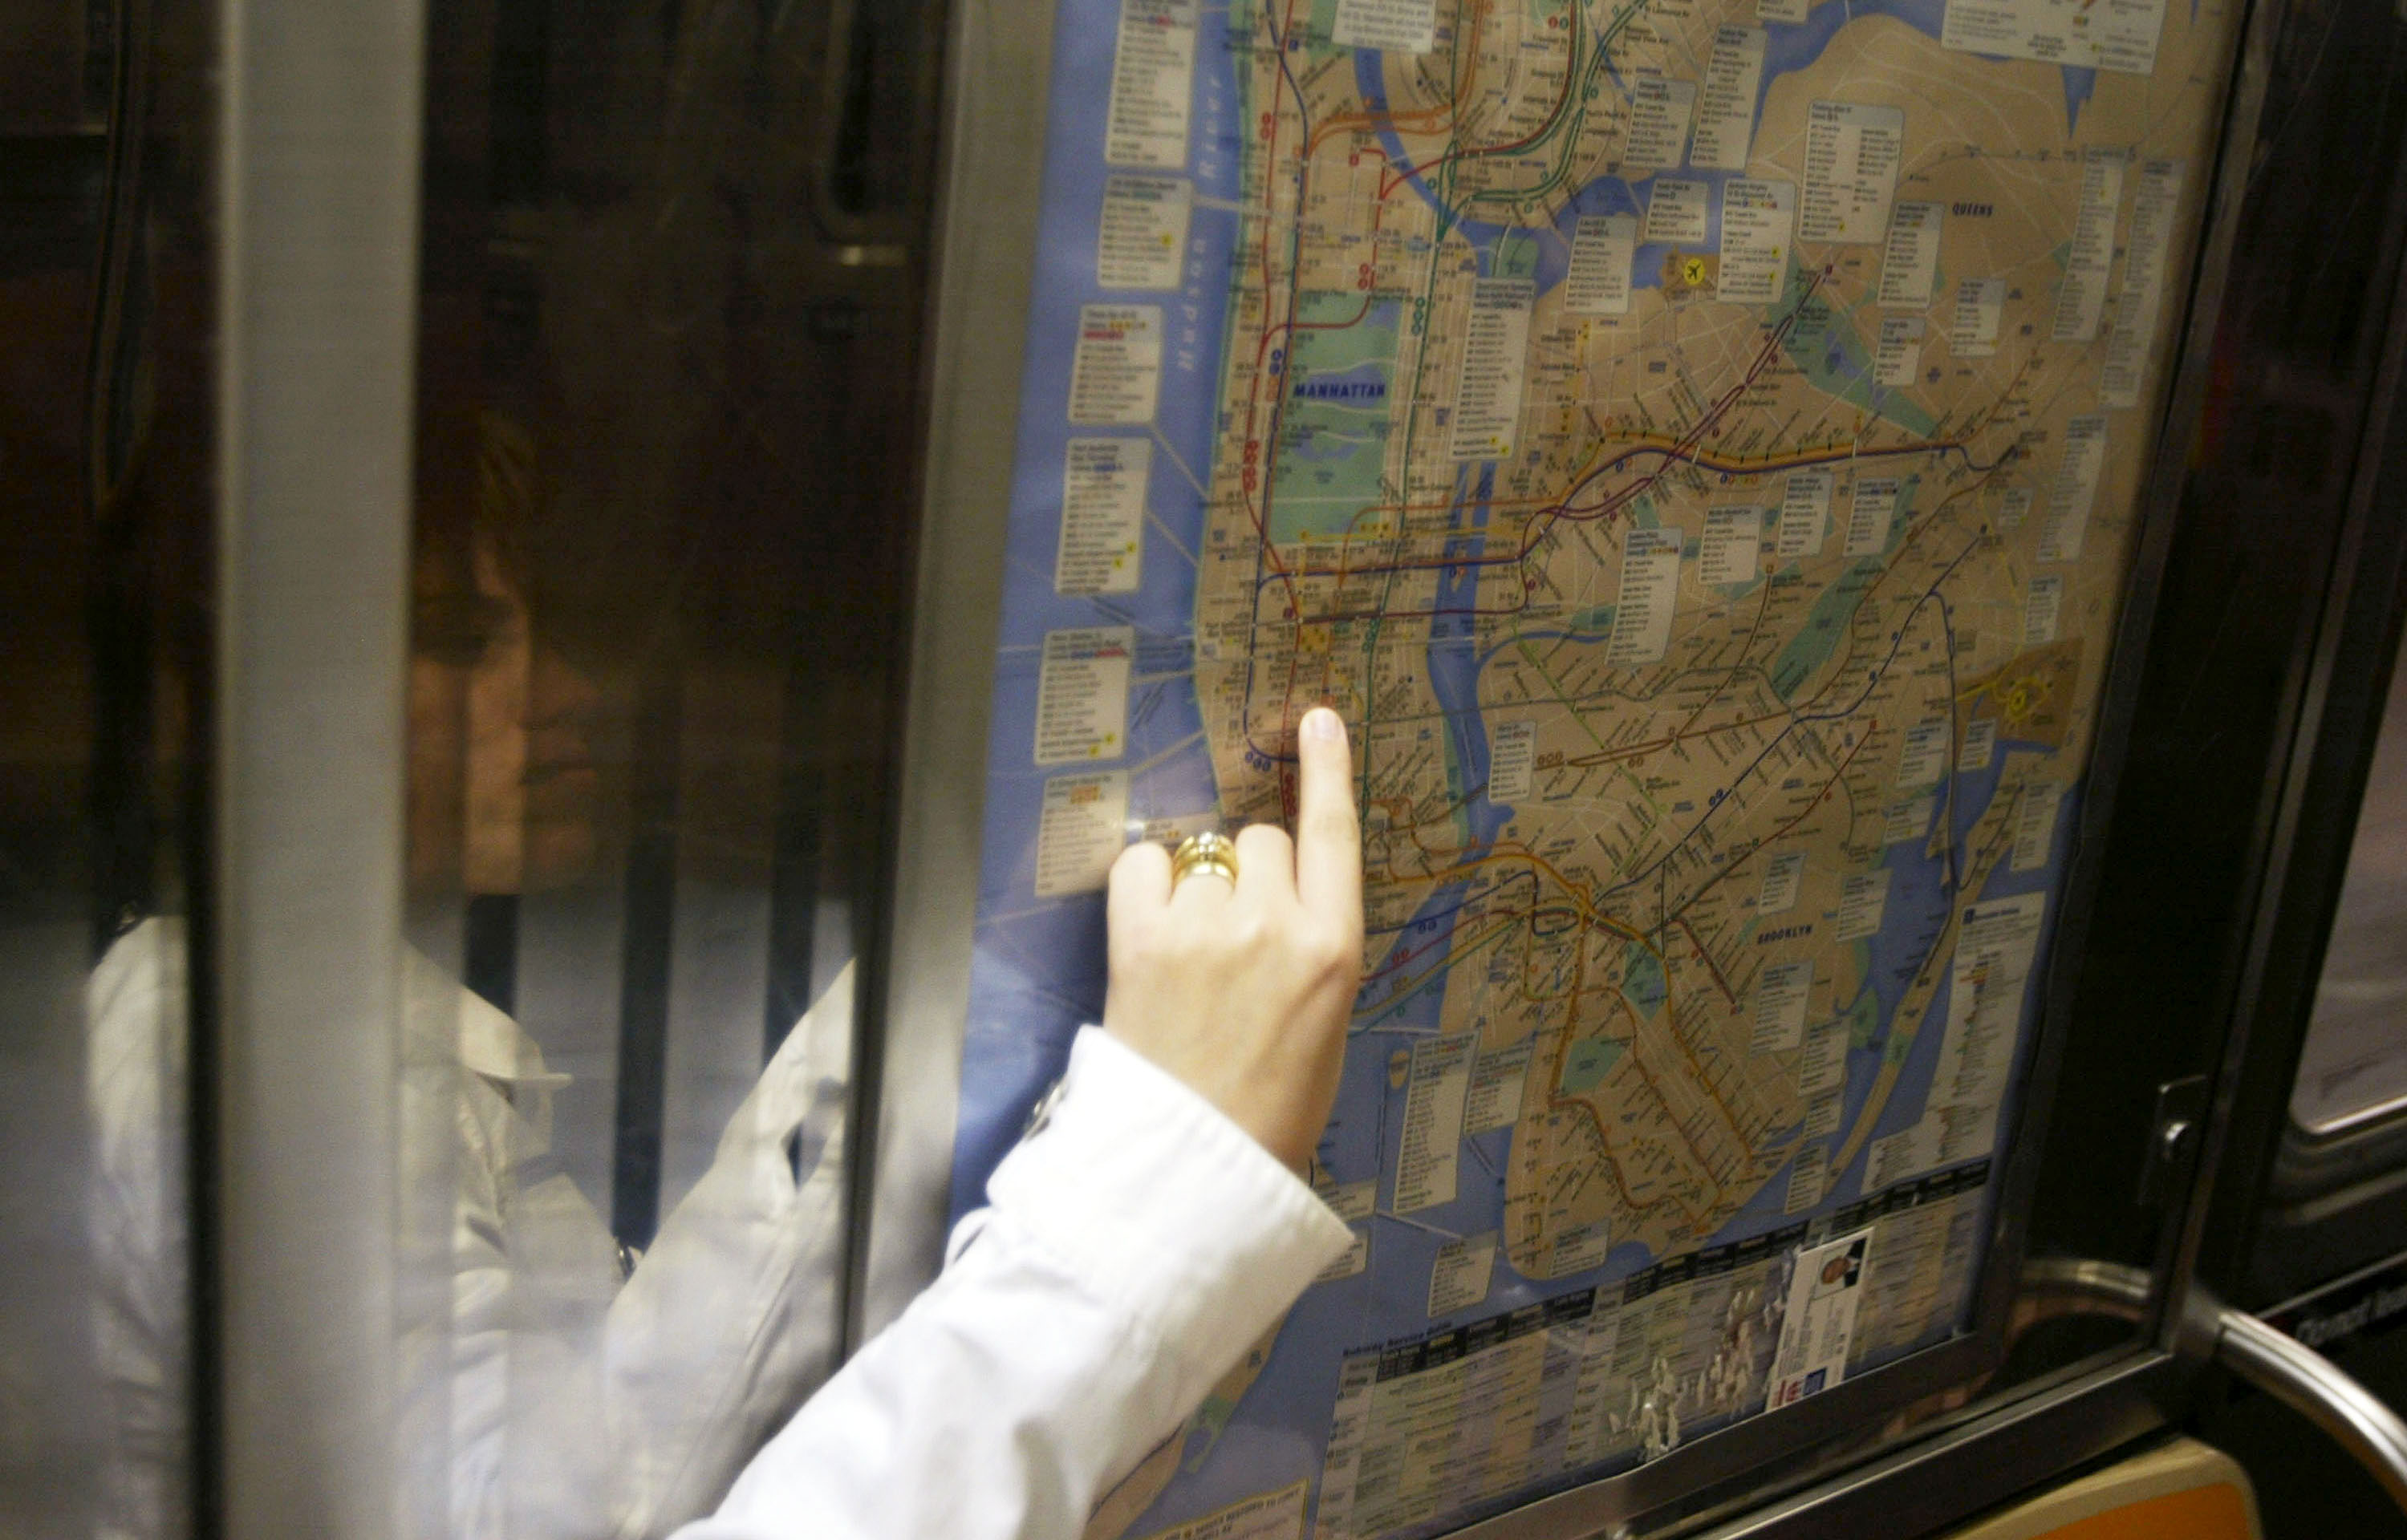 Michael Hertz, who helped design New York City's subway map, dies at 87